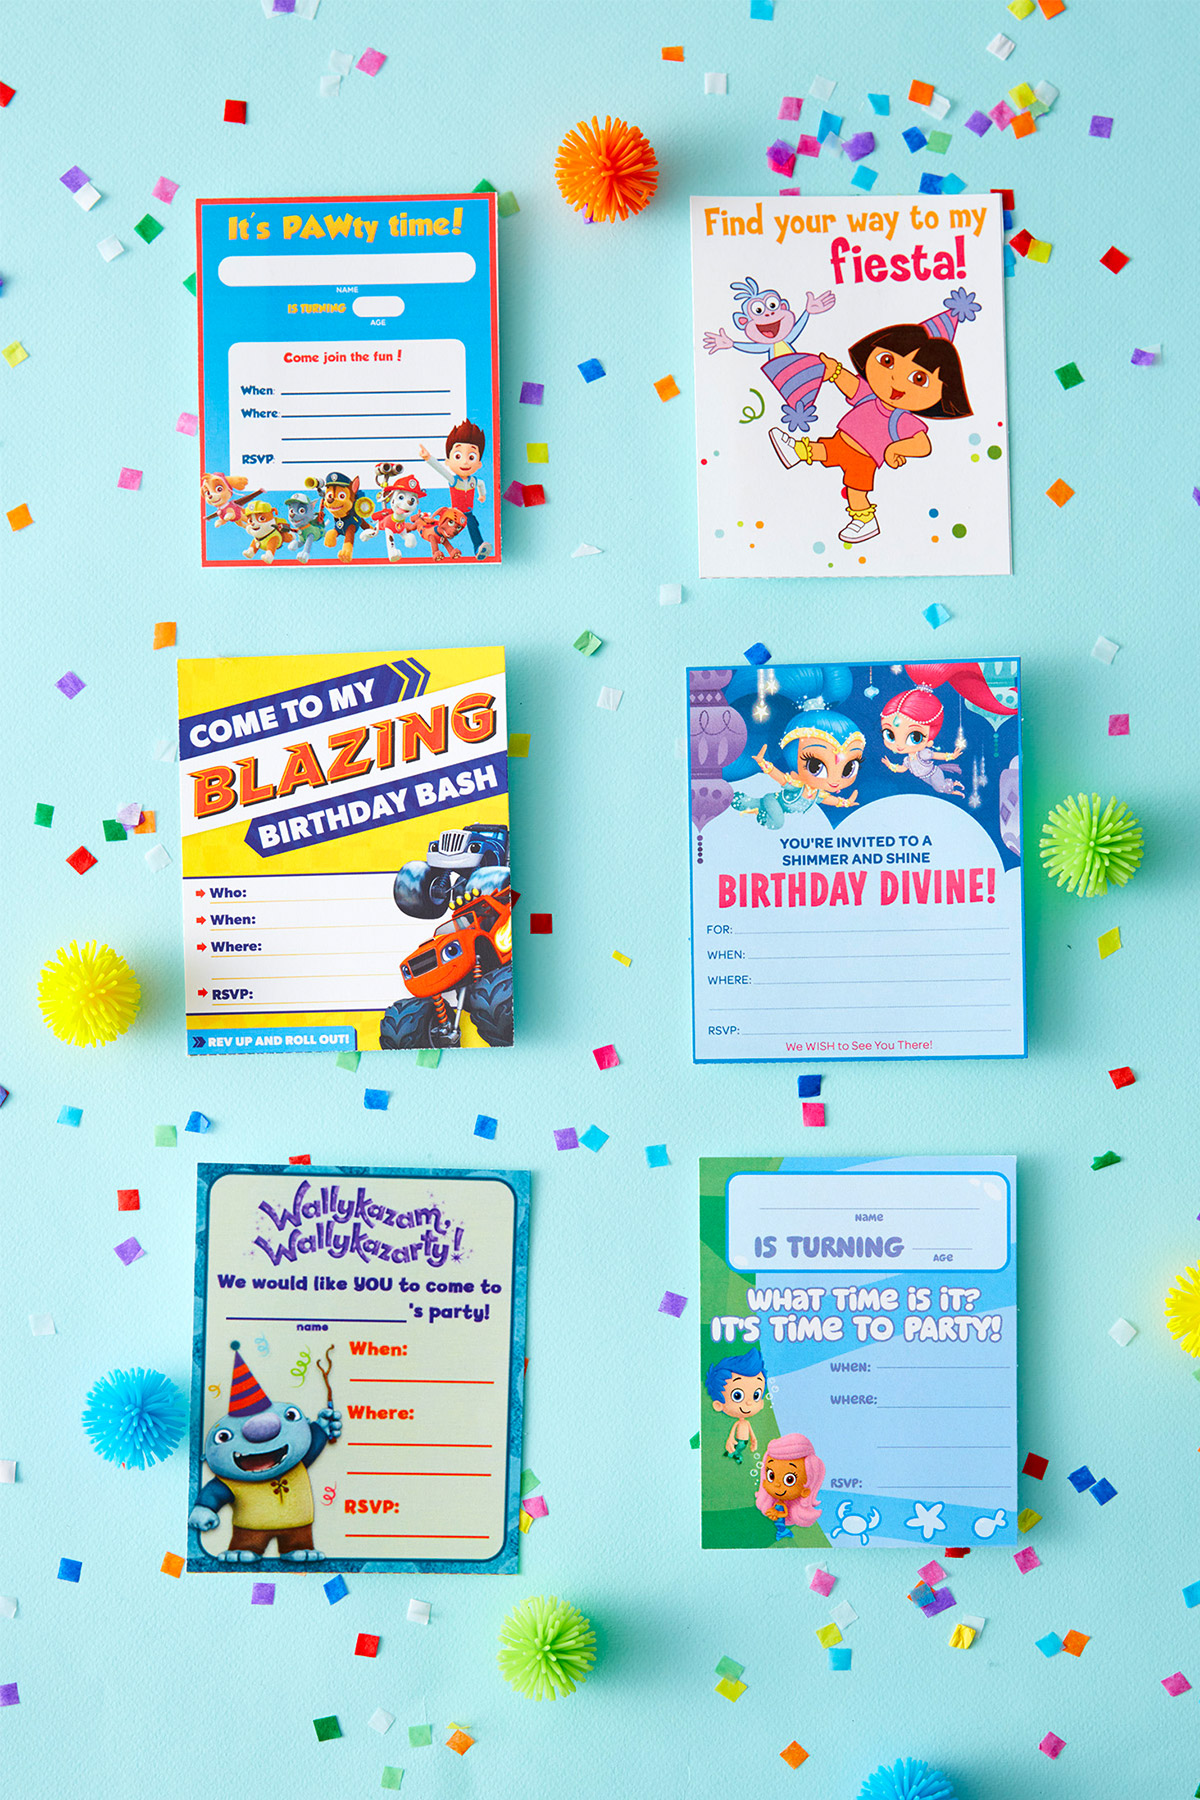 graphic regarding Printable Party Invite titled Nick Jr. Printable Birthday Get together Invites Nickelodeon